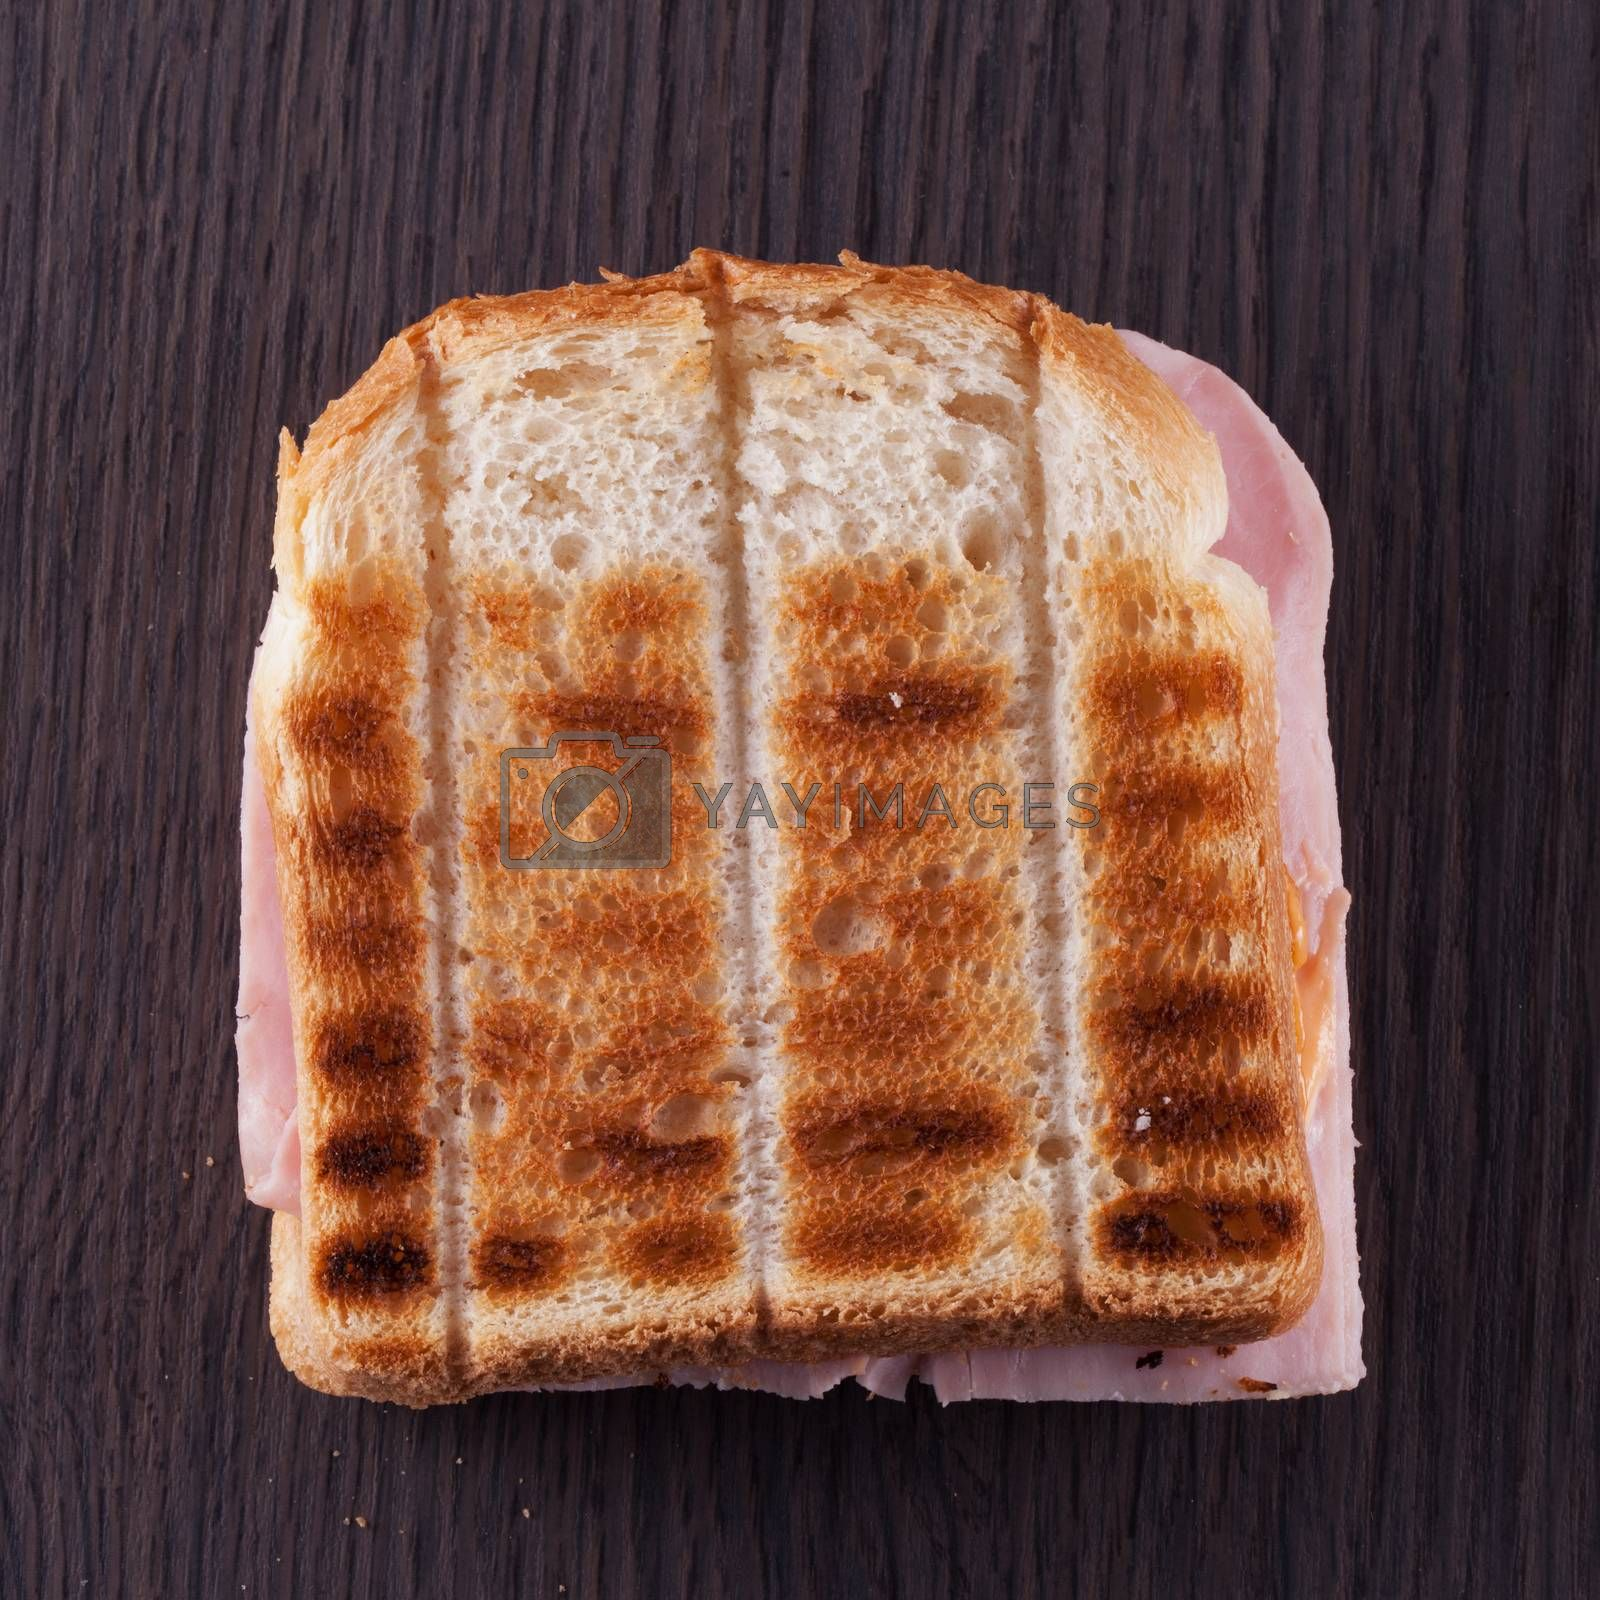 Royalty free image of Toast by Koufax73